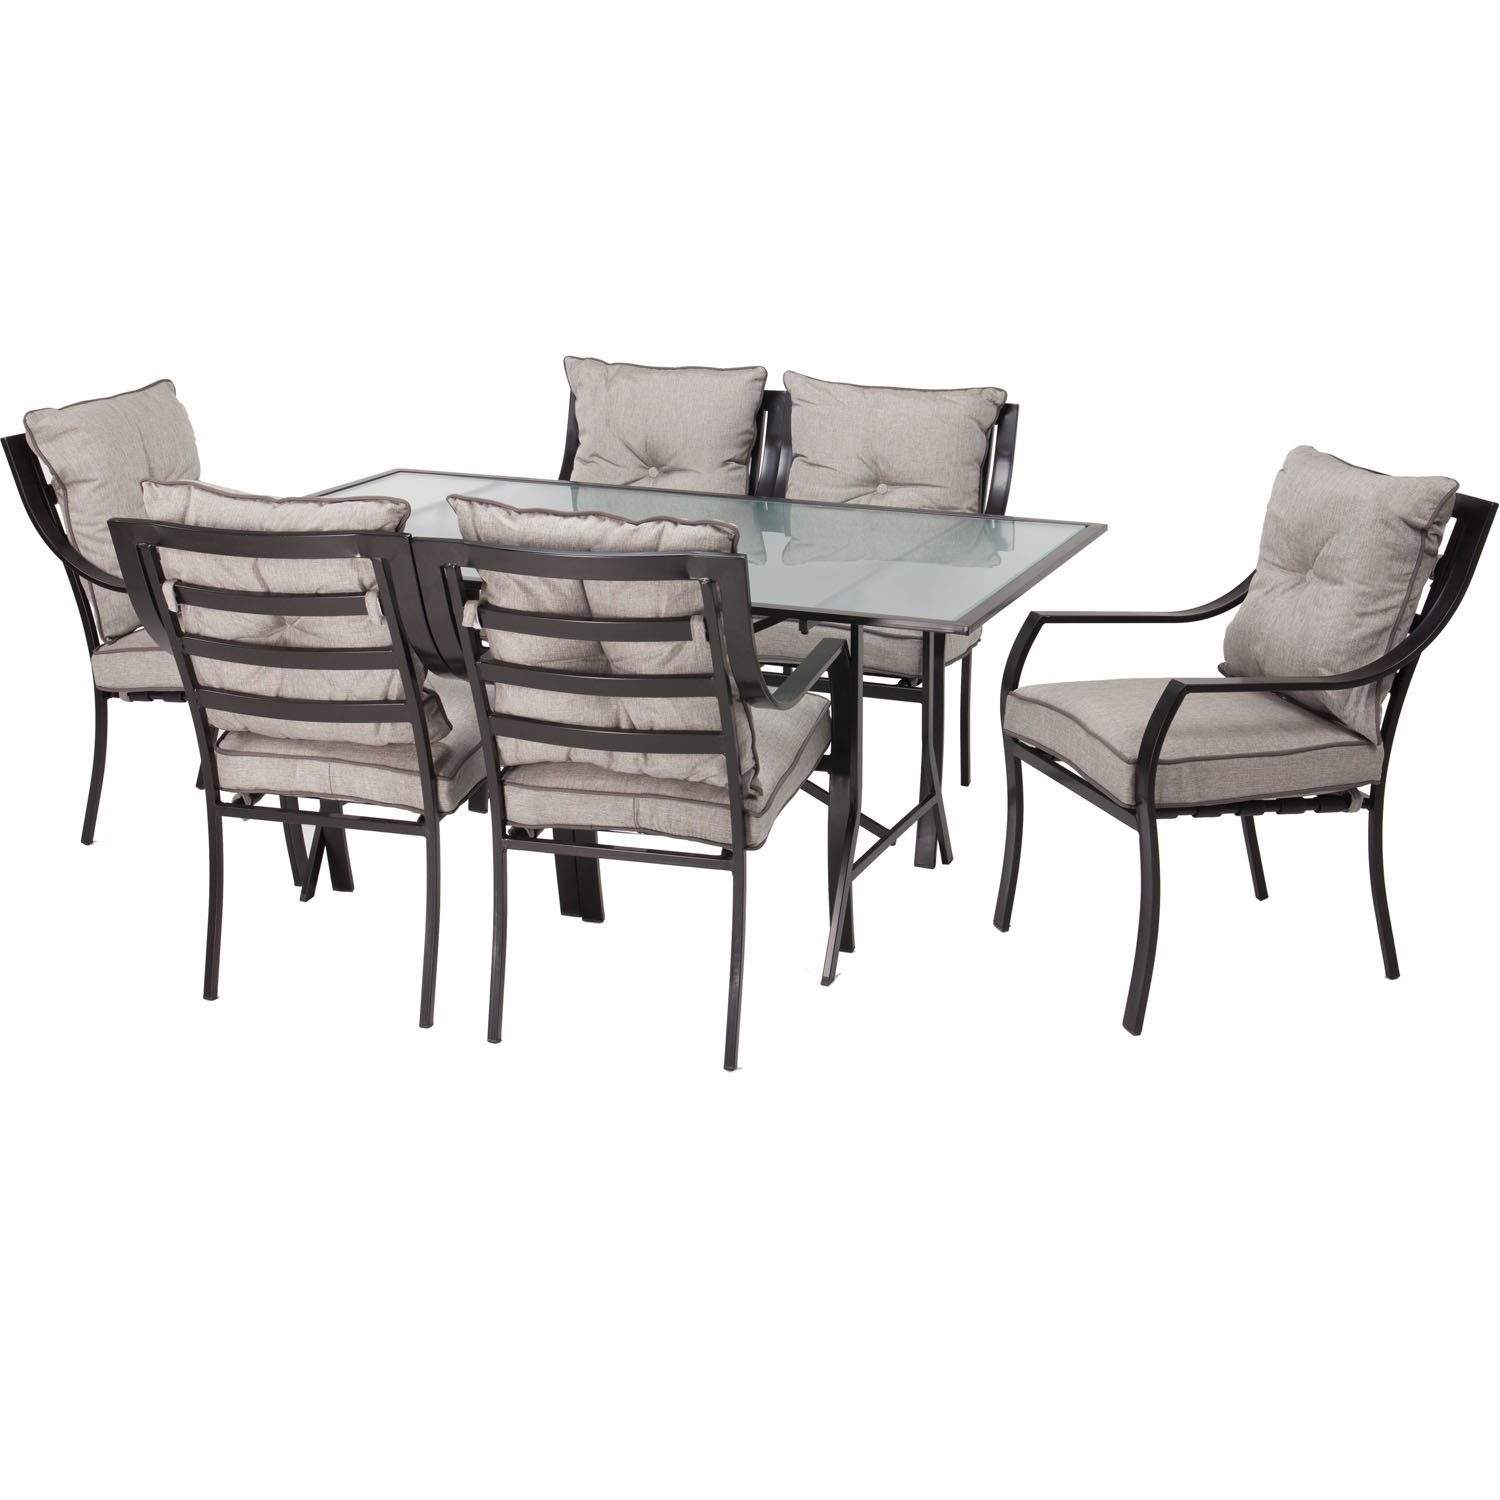 Bunnings Outdoor Heaters Electric 7 Piece Outdoor Patio Furniture Metal Dining Set With